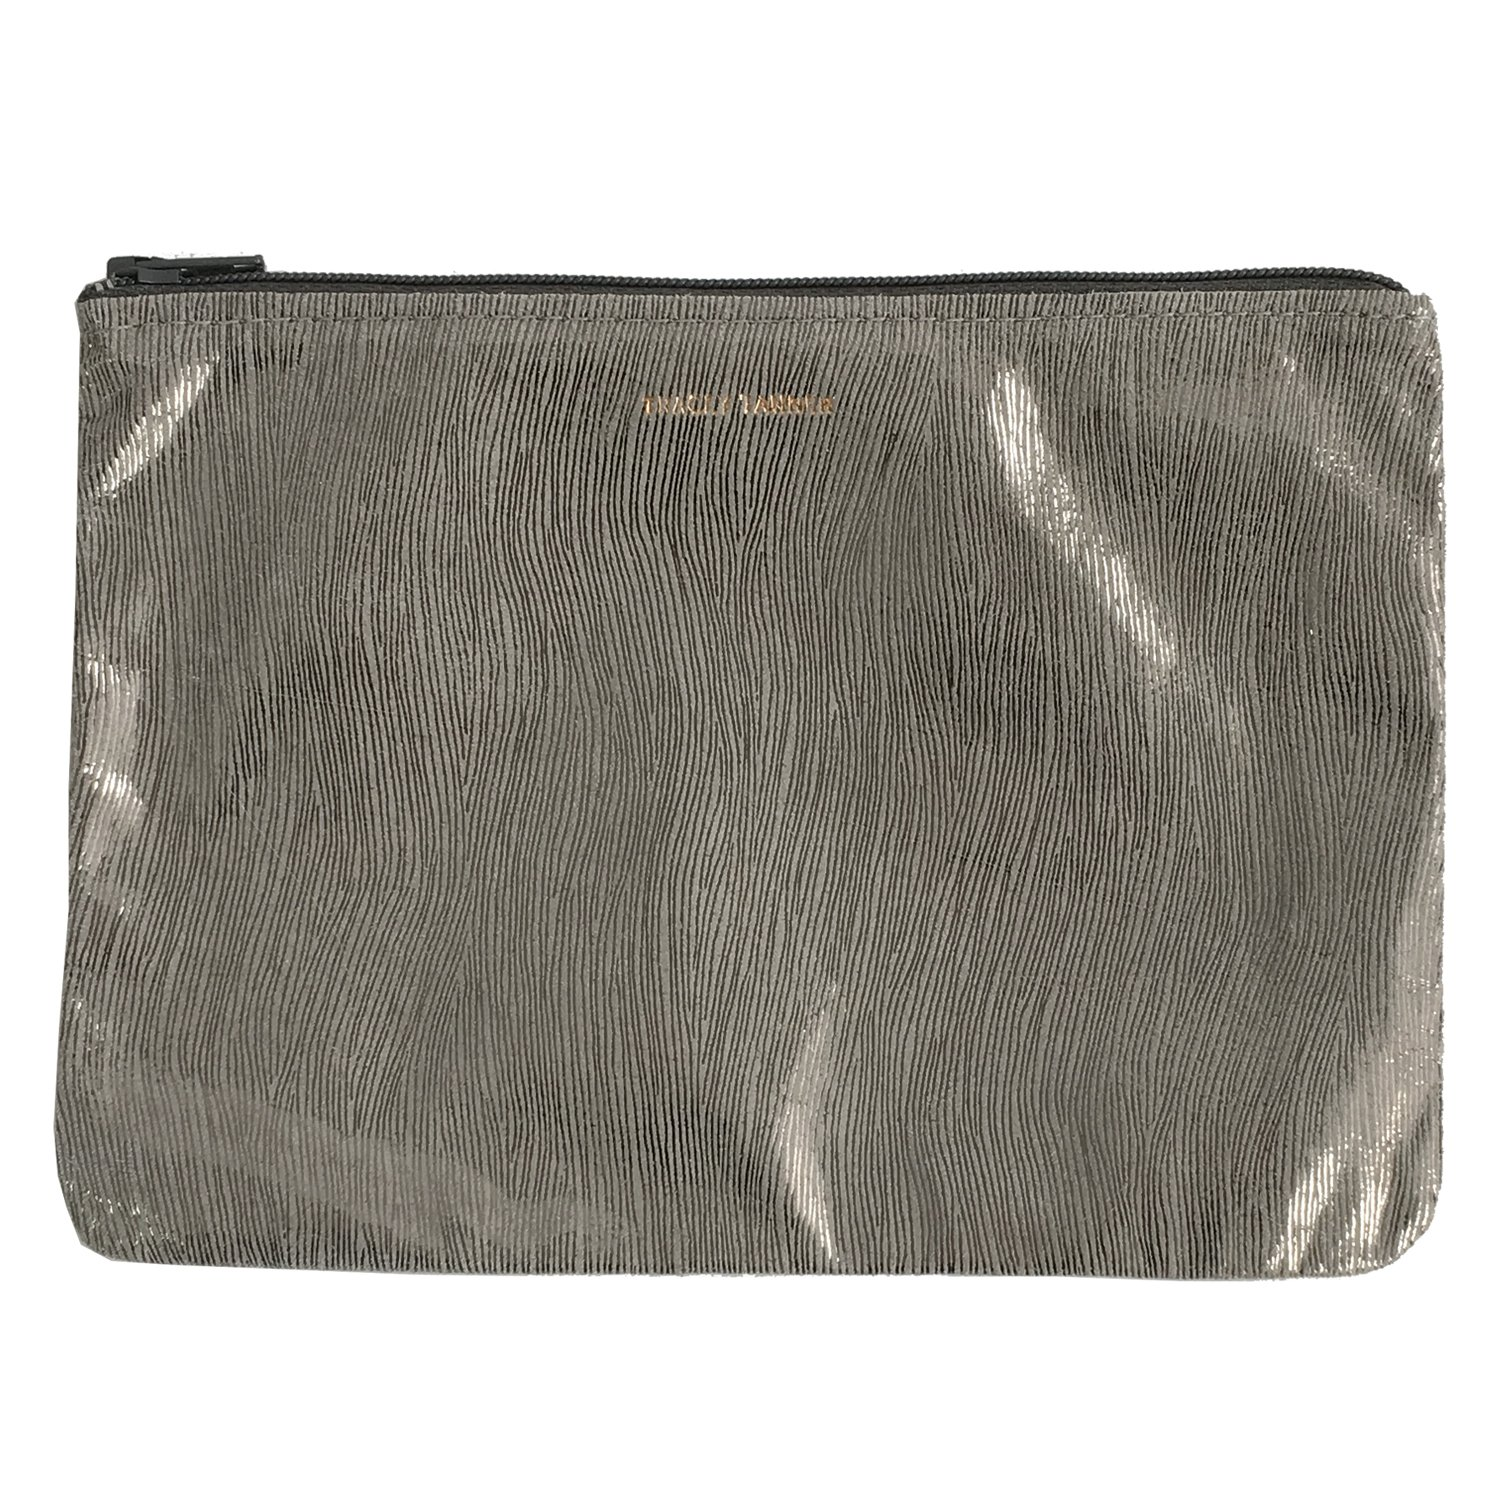 Tracey Tanner Medium Zipper Top Pouch - Grey Smoke Streaks